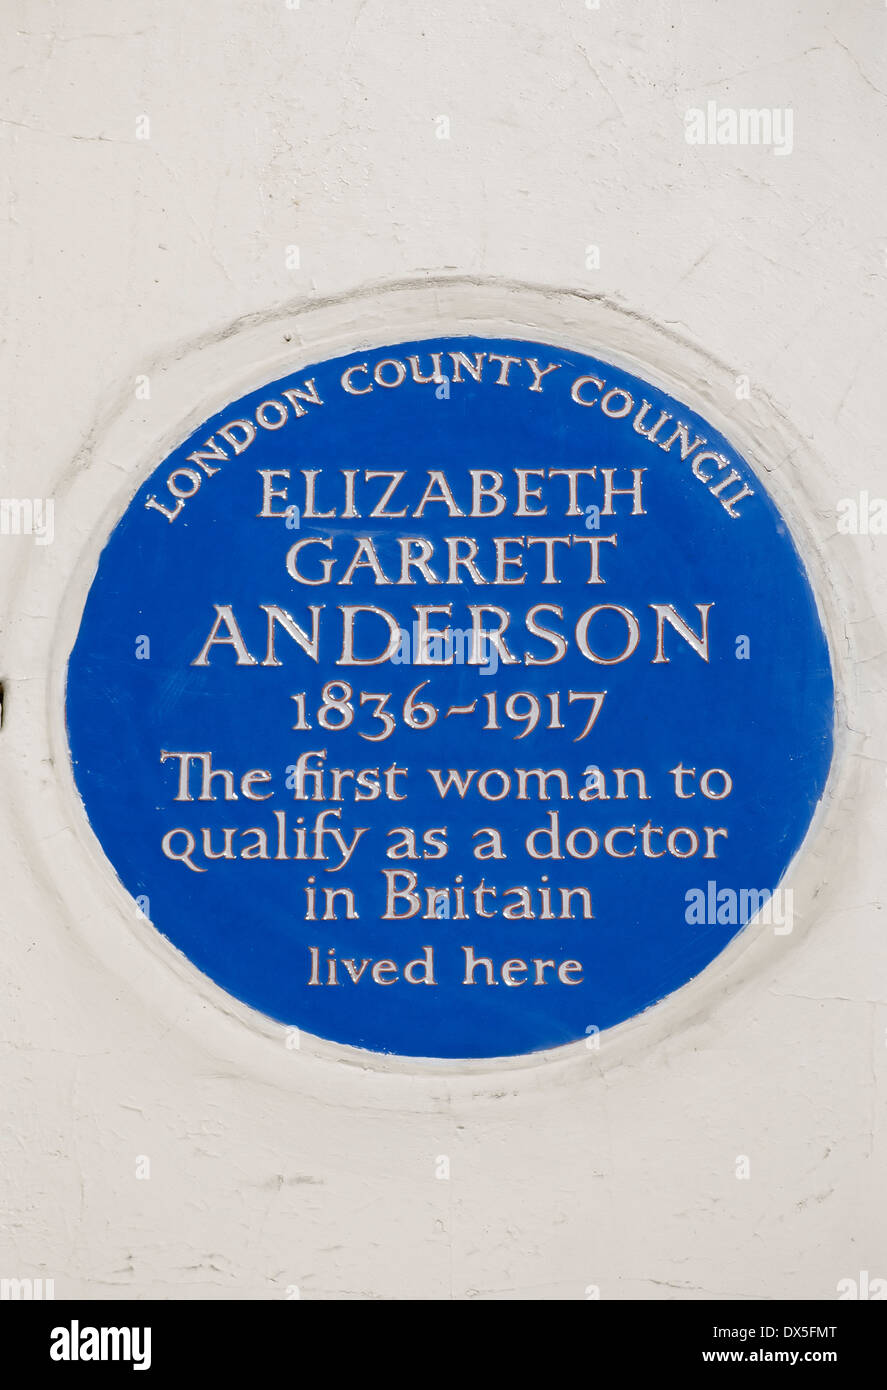 london county council blue plaque marking a home of doctor elizabeth garrett anderson, london, england - Stock Image